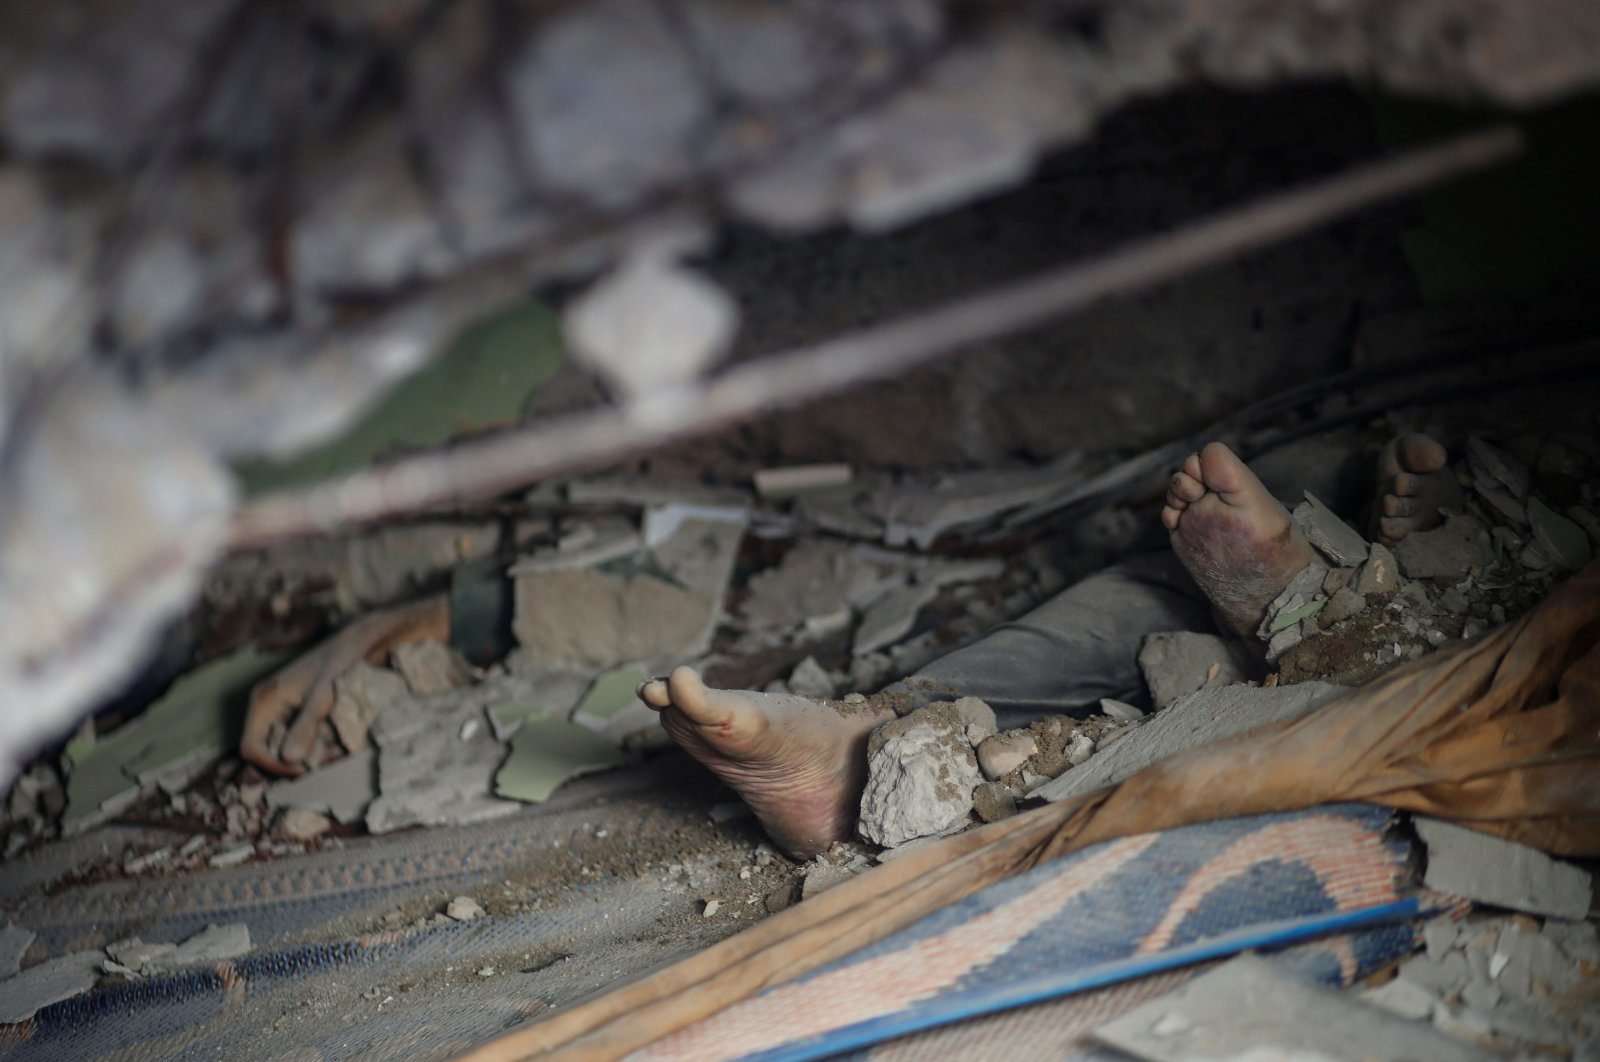 The bodies of victims killed by deadly Israeli bombardments are seen amid rubble in Gaza City, Palestine, May 16, 2021. (Reuters Photo)